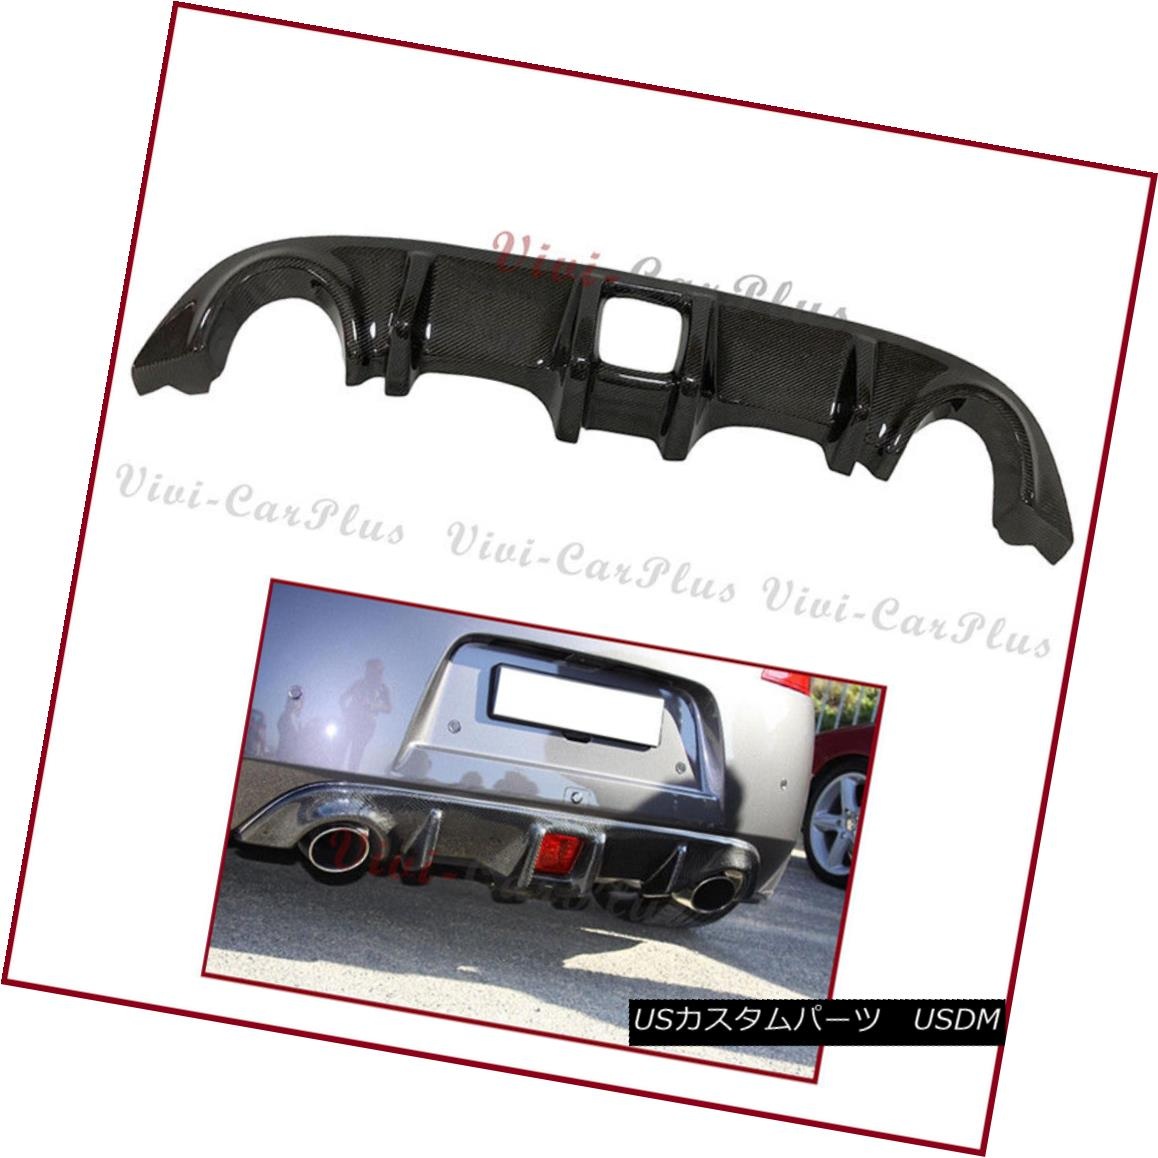 エアロパーツ For 10-17 Carbon Nissan 370Z Fairlady V Z34 V Type Diffuser Carbon Fiber Rear Bumper Diffuser Lip 10-17日産370ZフェアレディZ34 Vタイプカーボンファイバーリアバンパーディフューザリップ, AirBuggy OnlineStore(直営店):0124acce --- officewill.xsrv.jp